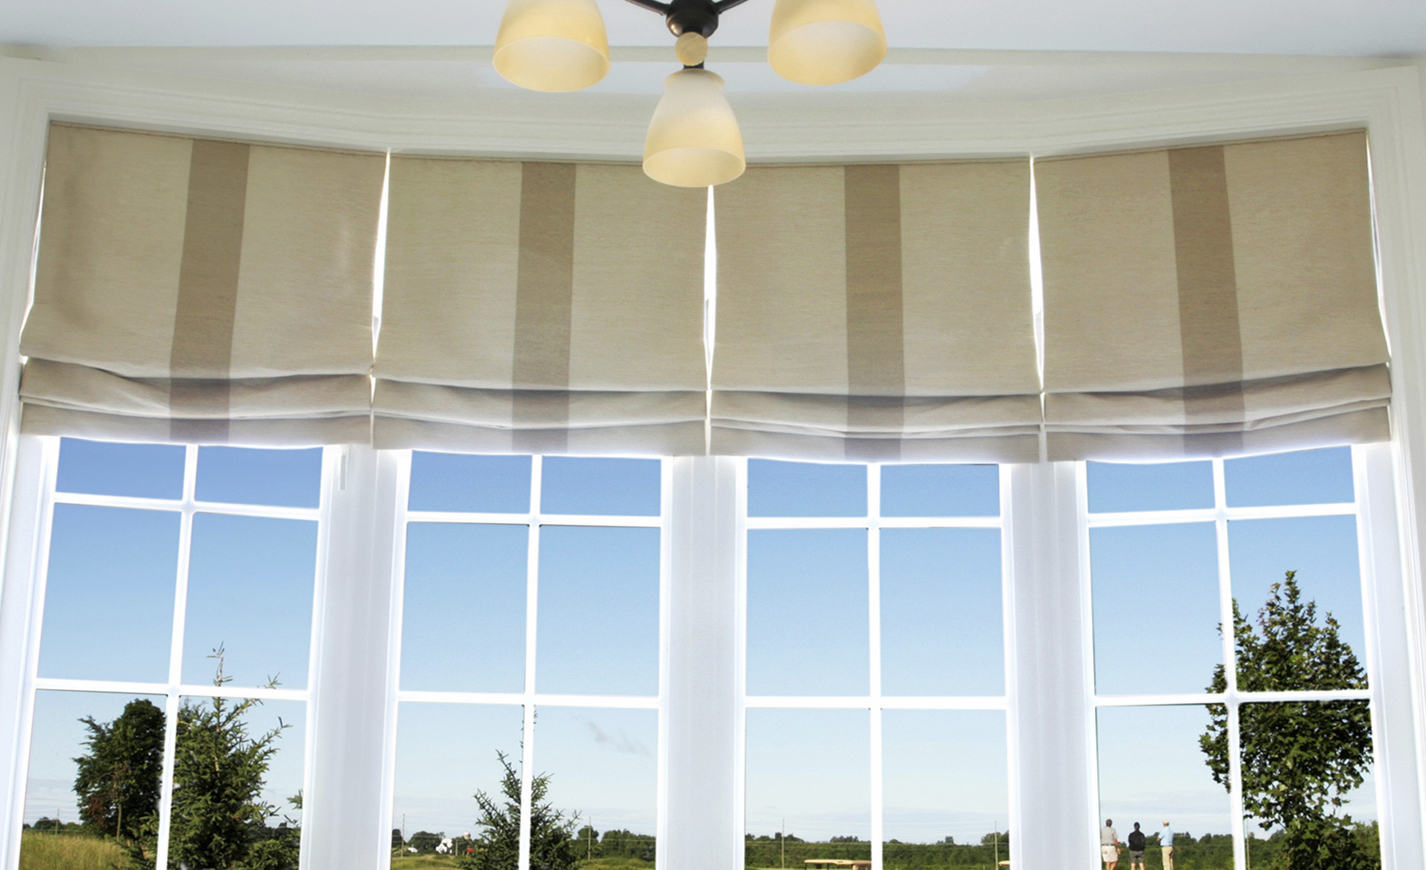 Diy Roman Shades For French Doors Roman Blinds Sash Windows And Interior Doors Diy